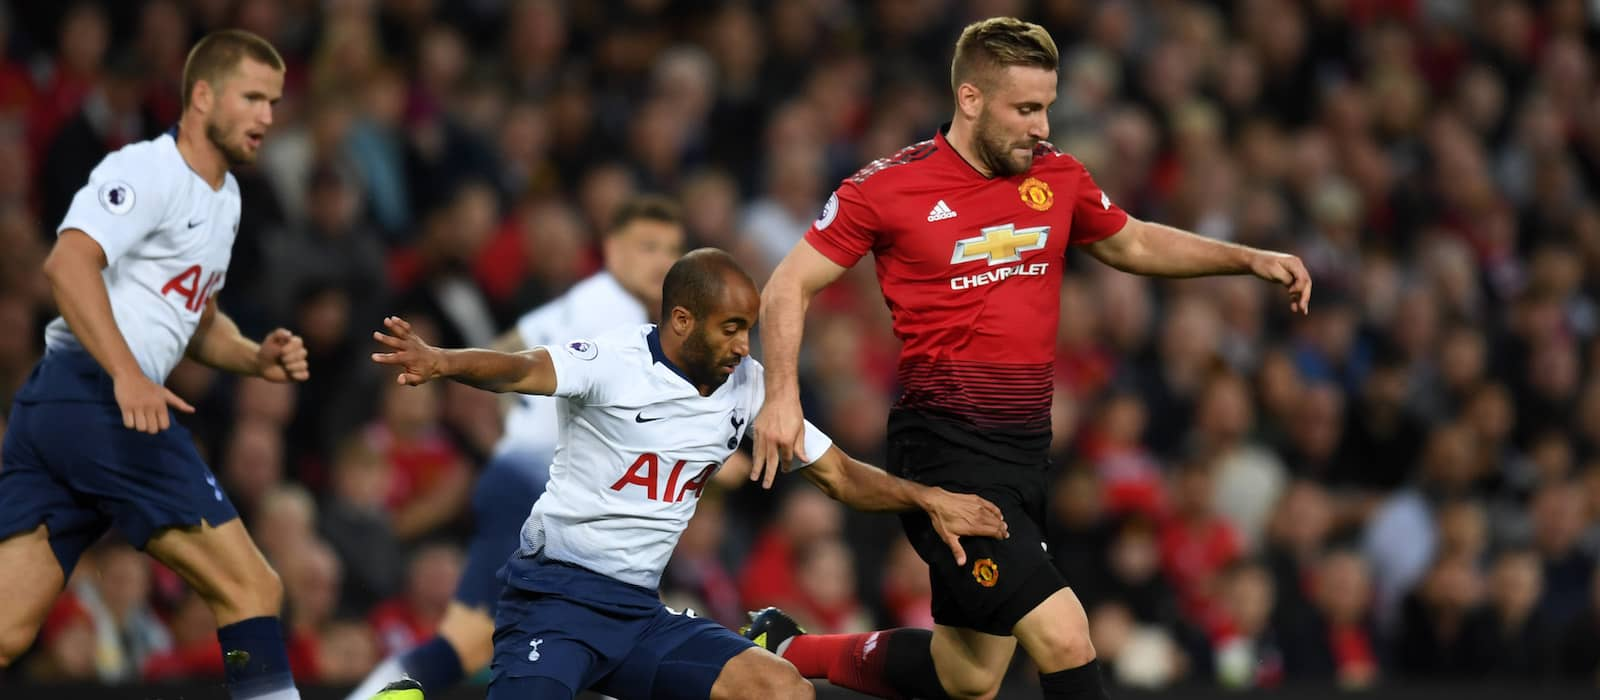 Manchester United's Luke Shaw puts in a top shift vs Tottenham Hotspurs